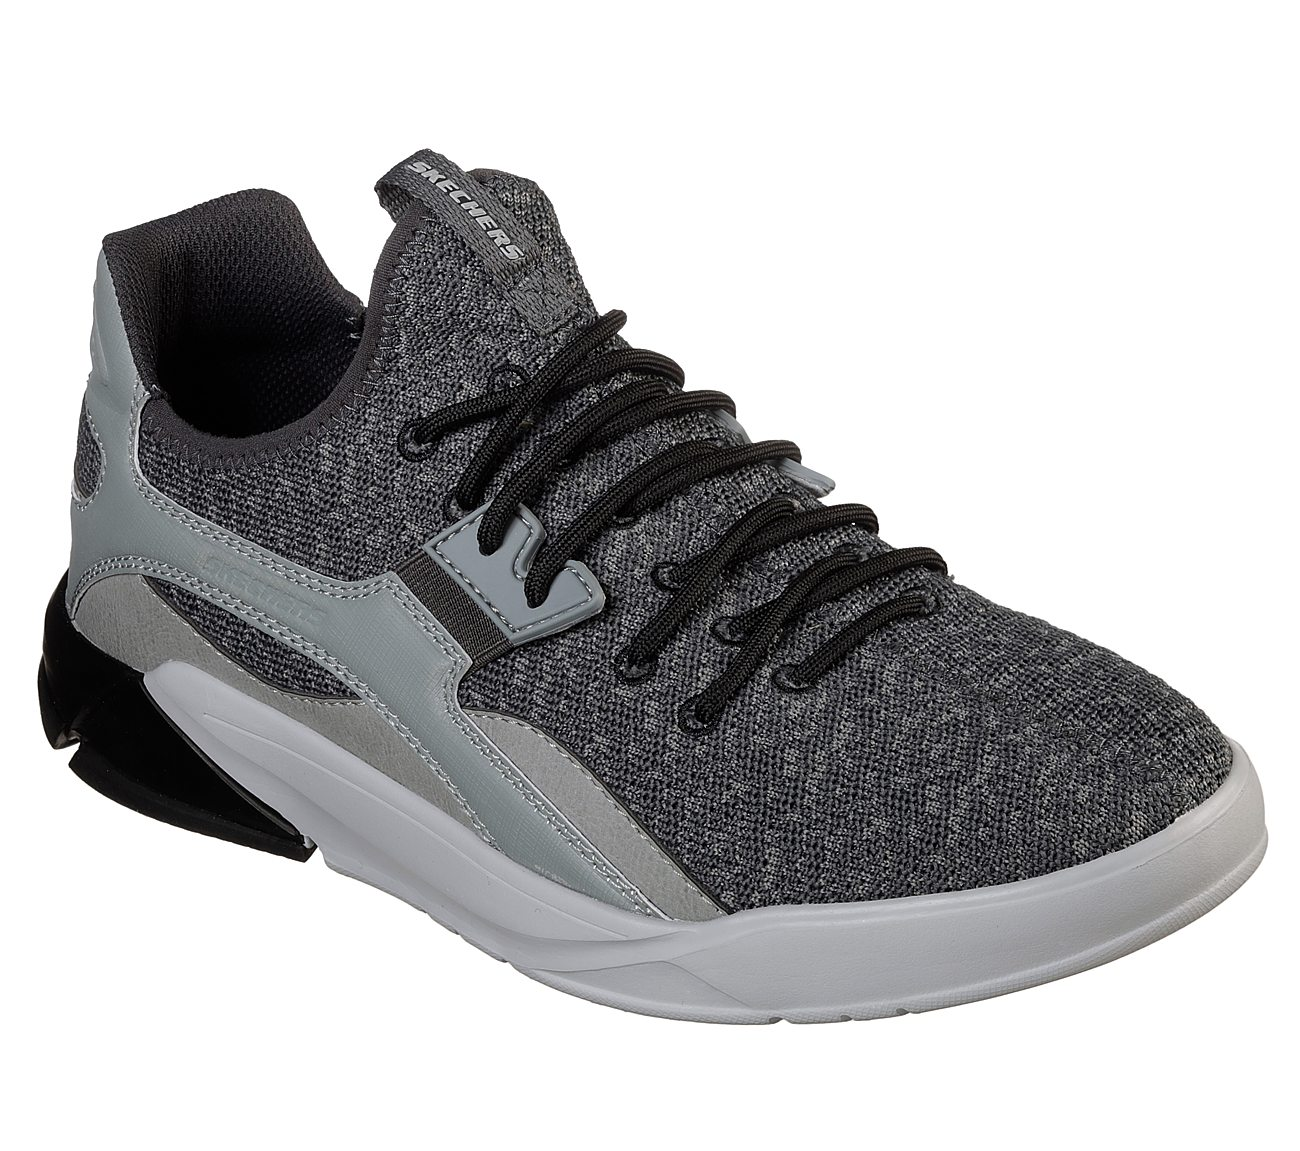 outlet manchester great sale Men's Relaxed Fit: Belson - Aseno cheap good selling sale genuine sale online shopping sKZZ2ezlrv